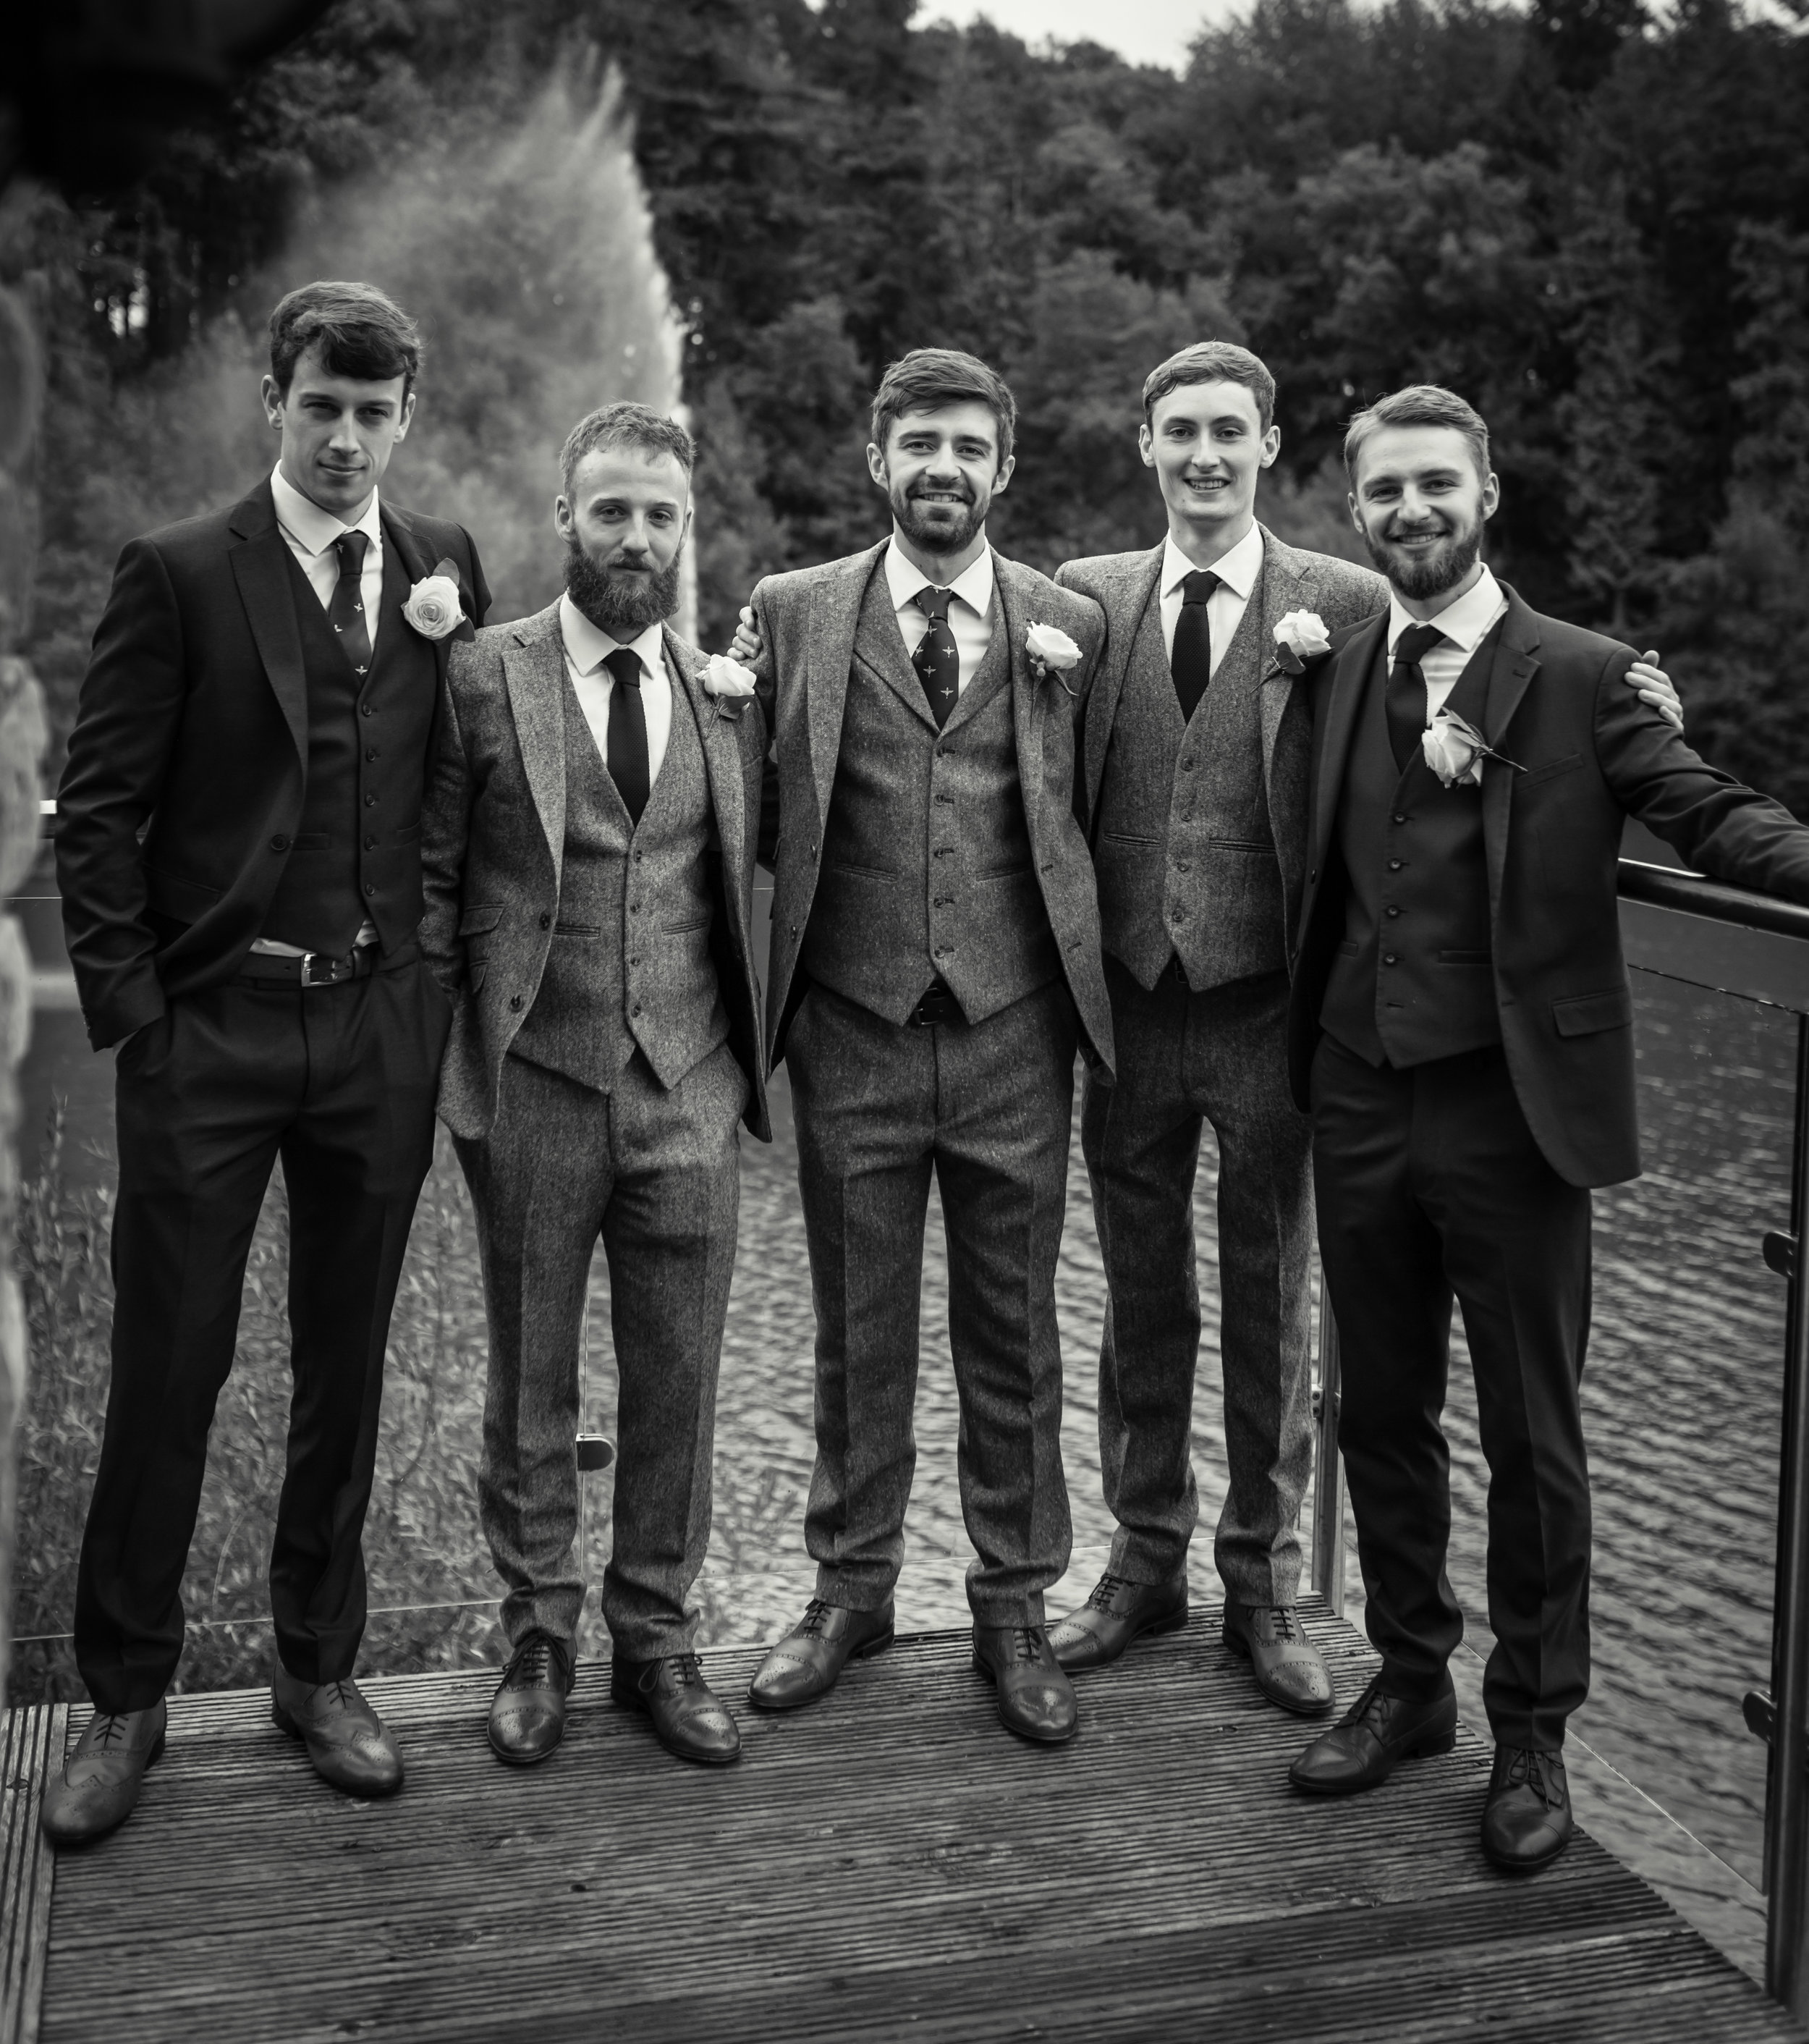 Black and white photograph of groom with his groomsmen